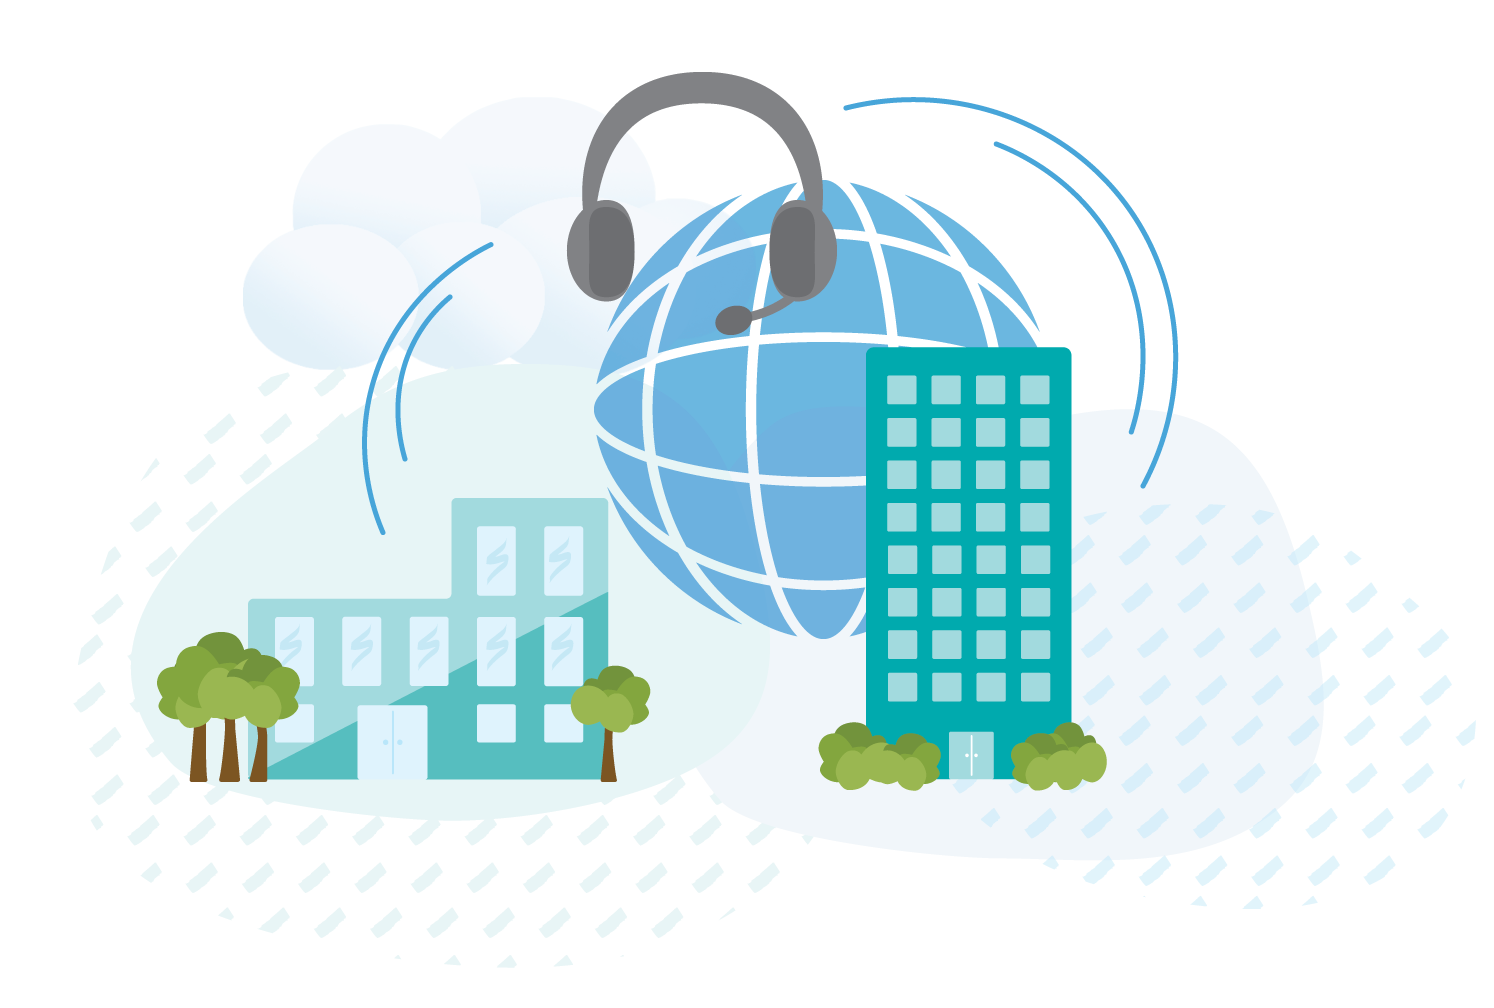 Two office buildings, a cloud, a sphere, and a headset